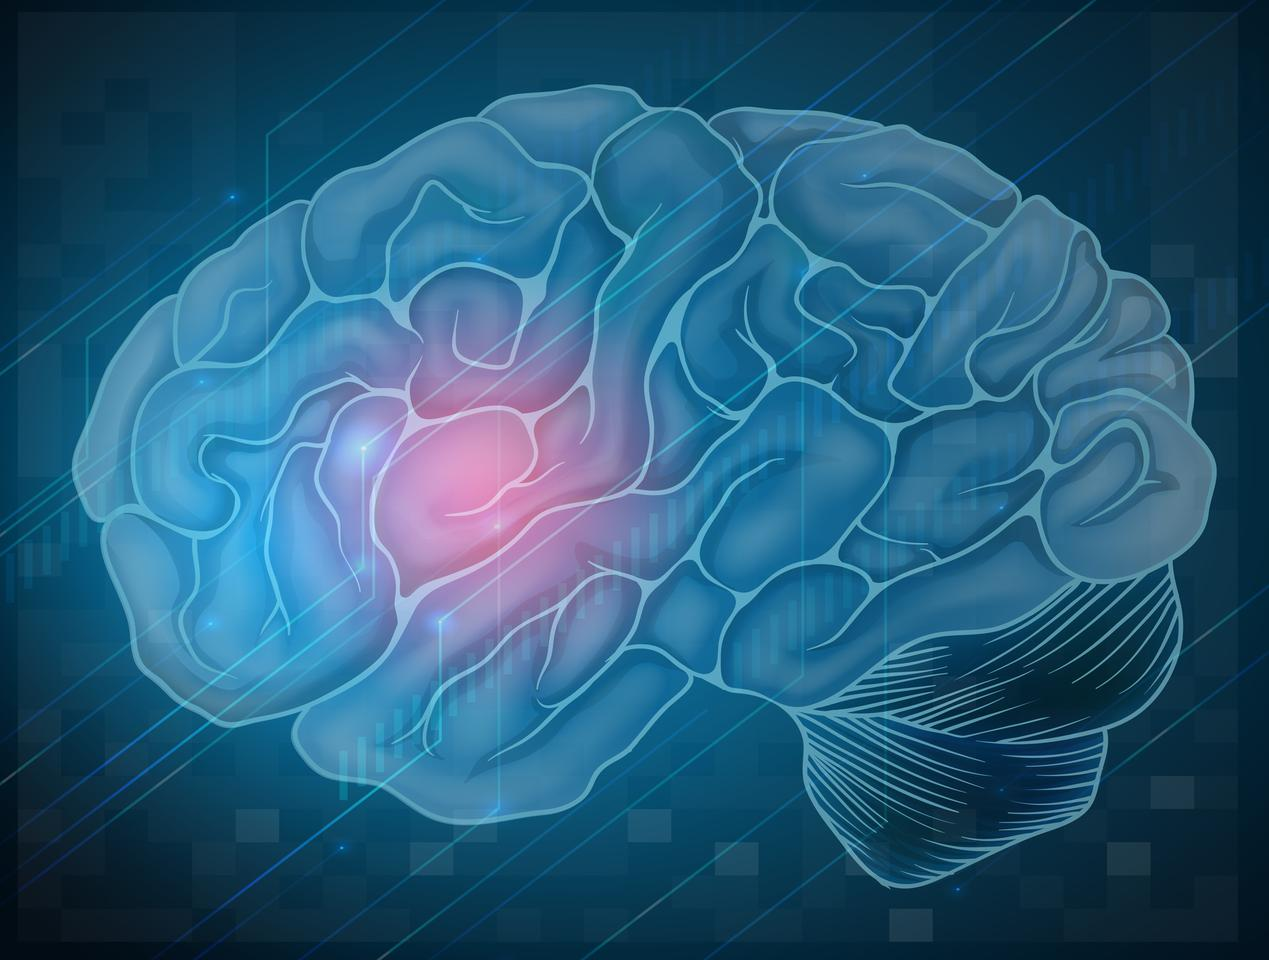 Scientists have identified an enzyme in the brain that may protect against damage caused by low oxygen levels